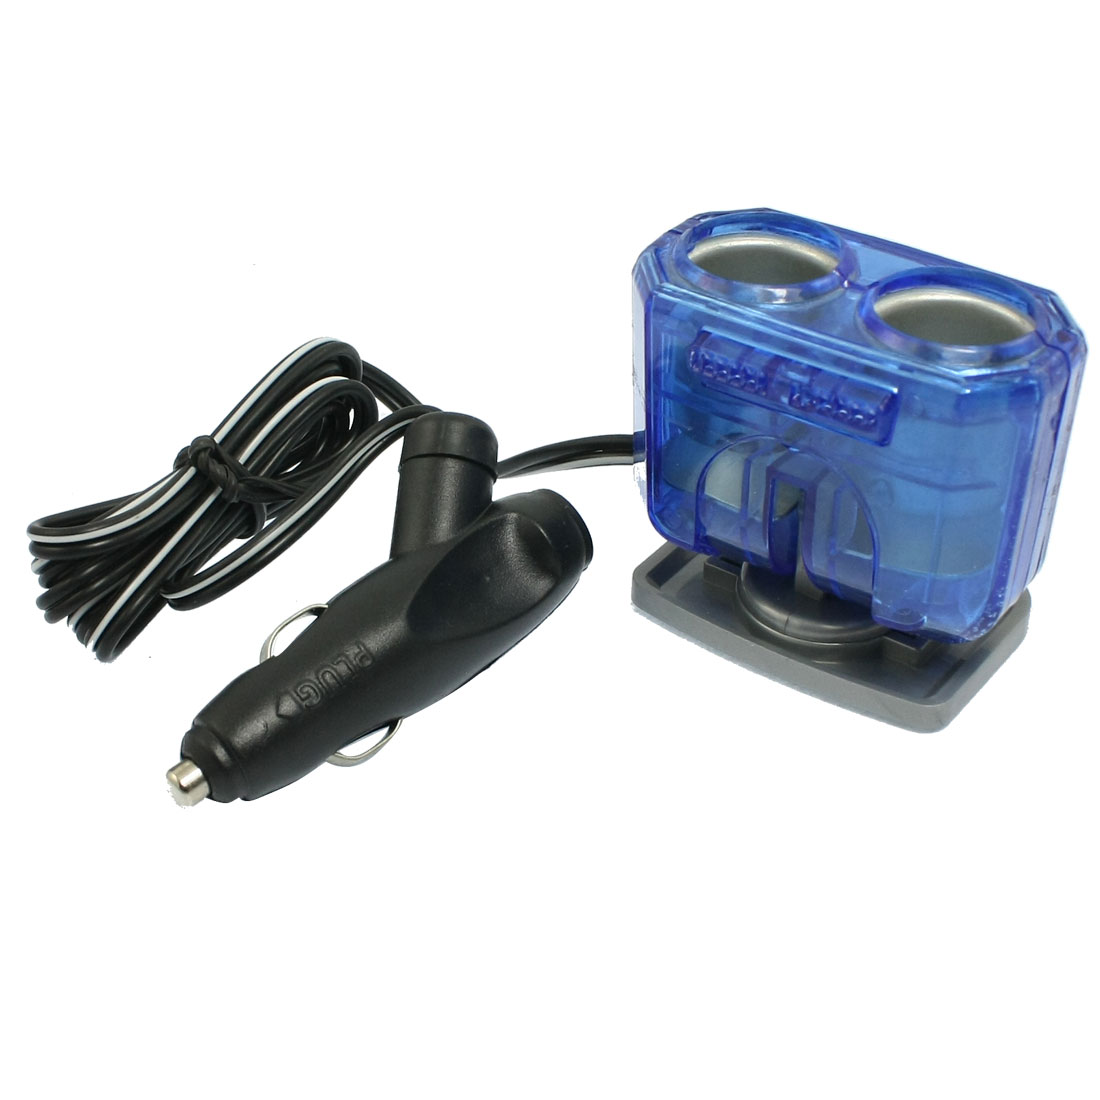 DC 12V 2-Way Socket Car Cigarette Lighter Charger Adapter Blue Black